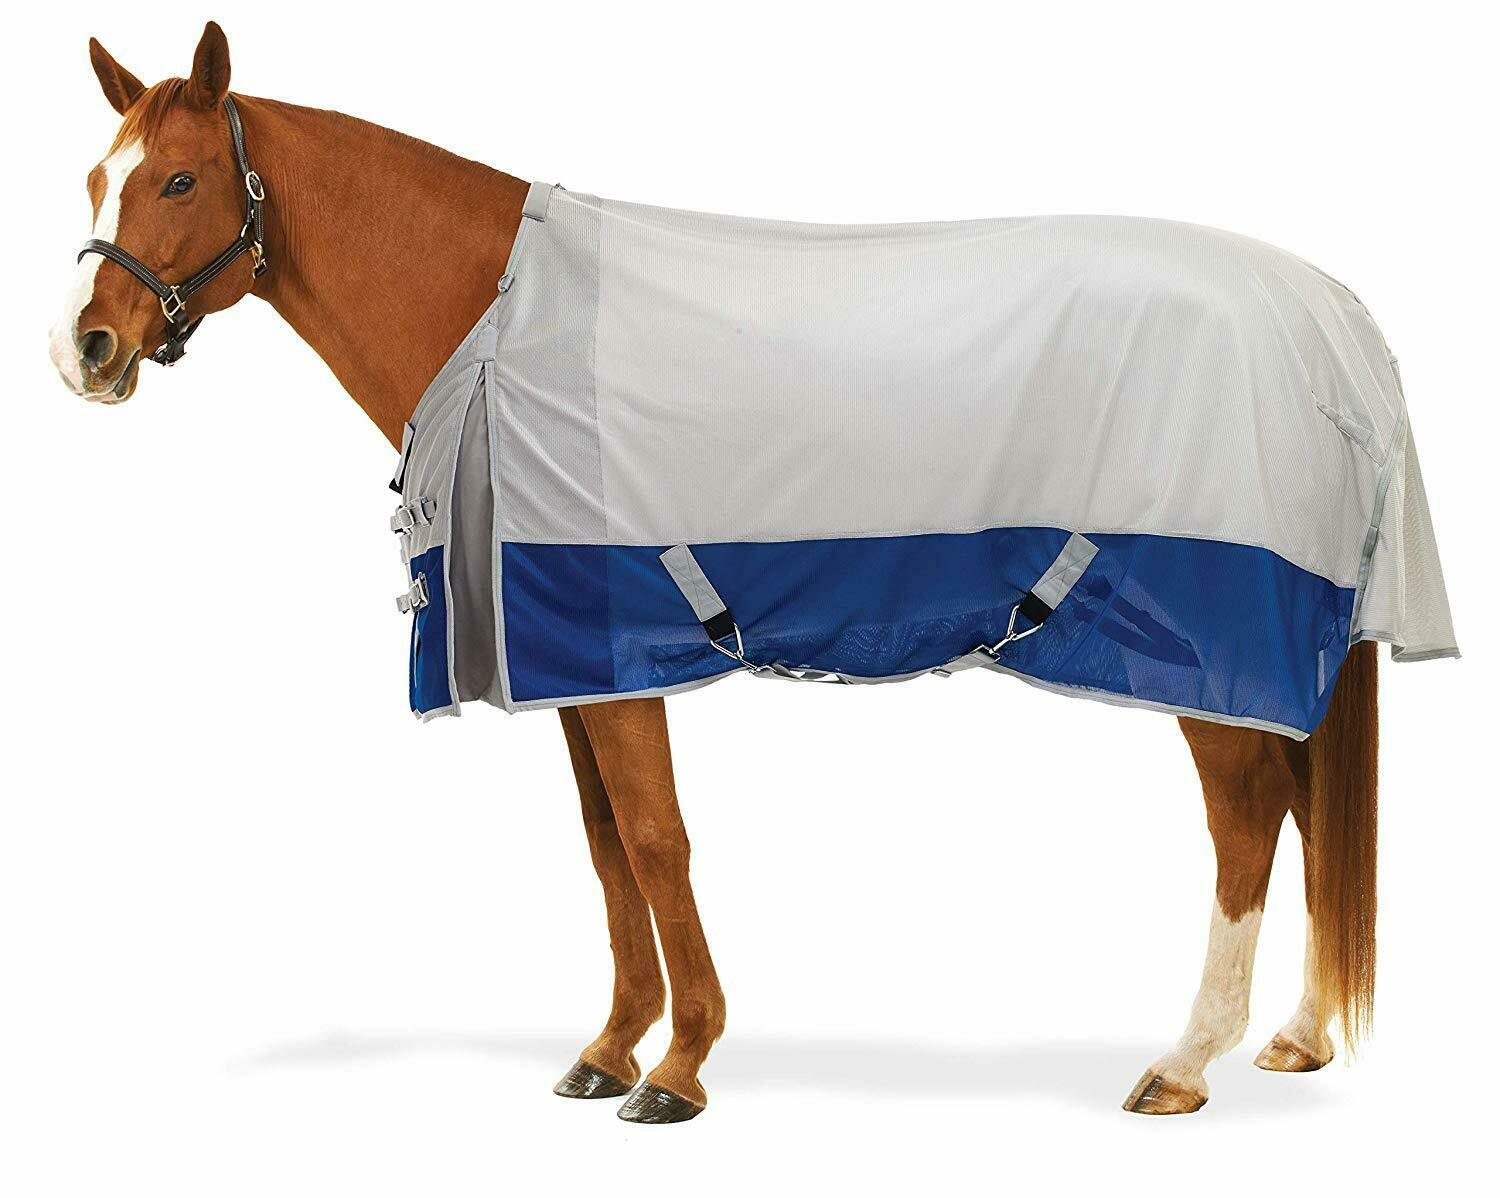 Centaur® Super  Fly Plus Sheet  sale with high discount